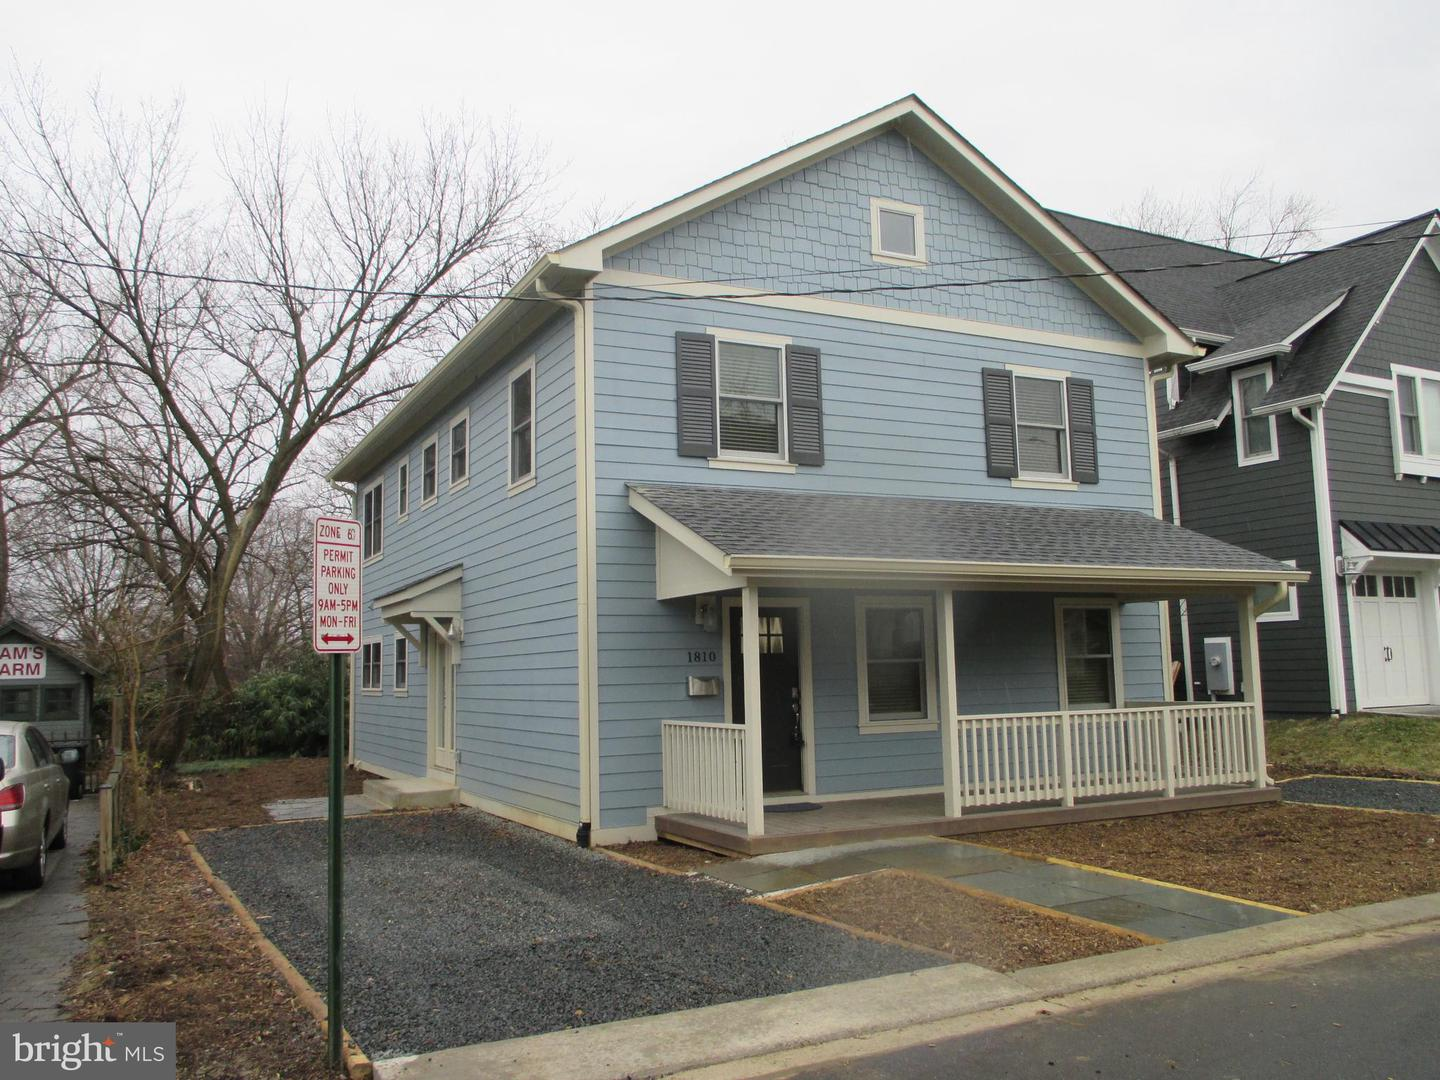 Other Residential for Rent at 1810 N Wayne St Arlington, Virginia 22201 United States